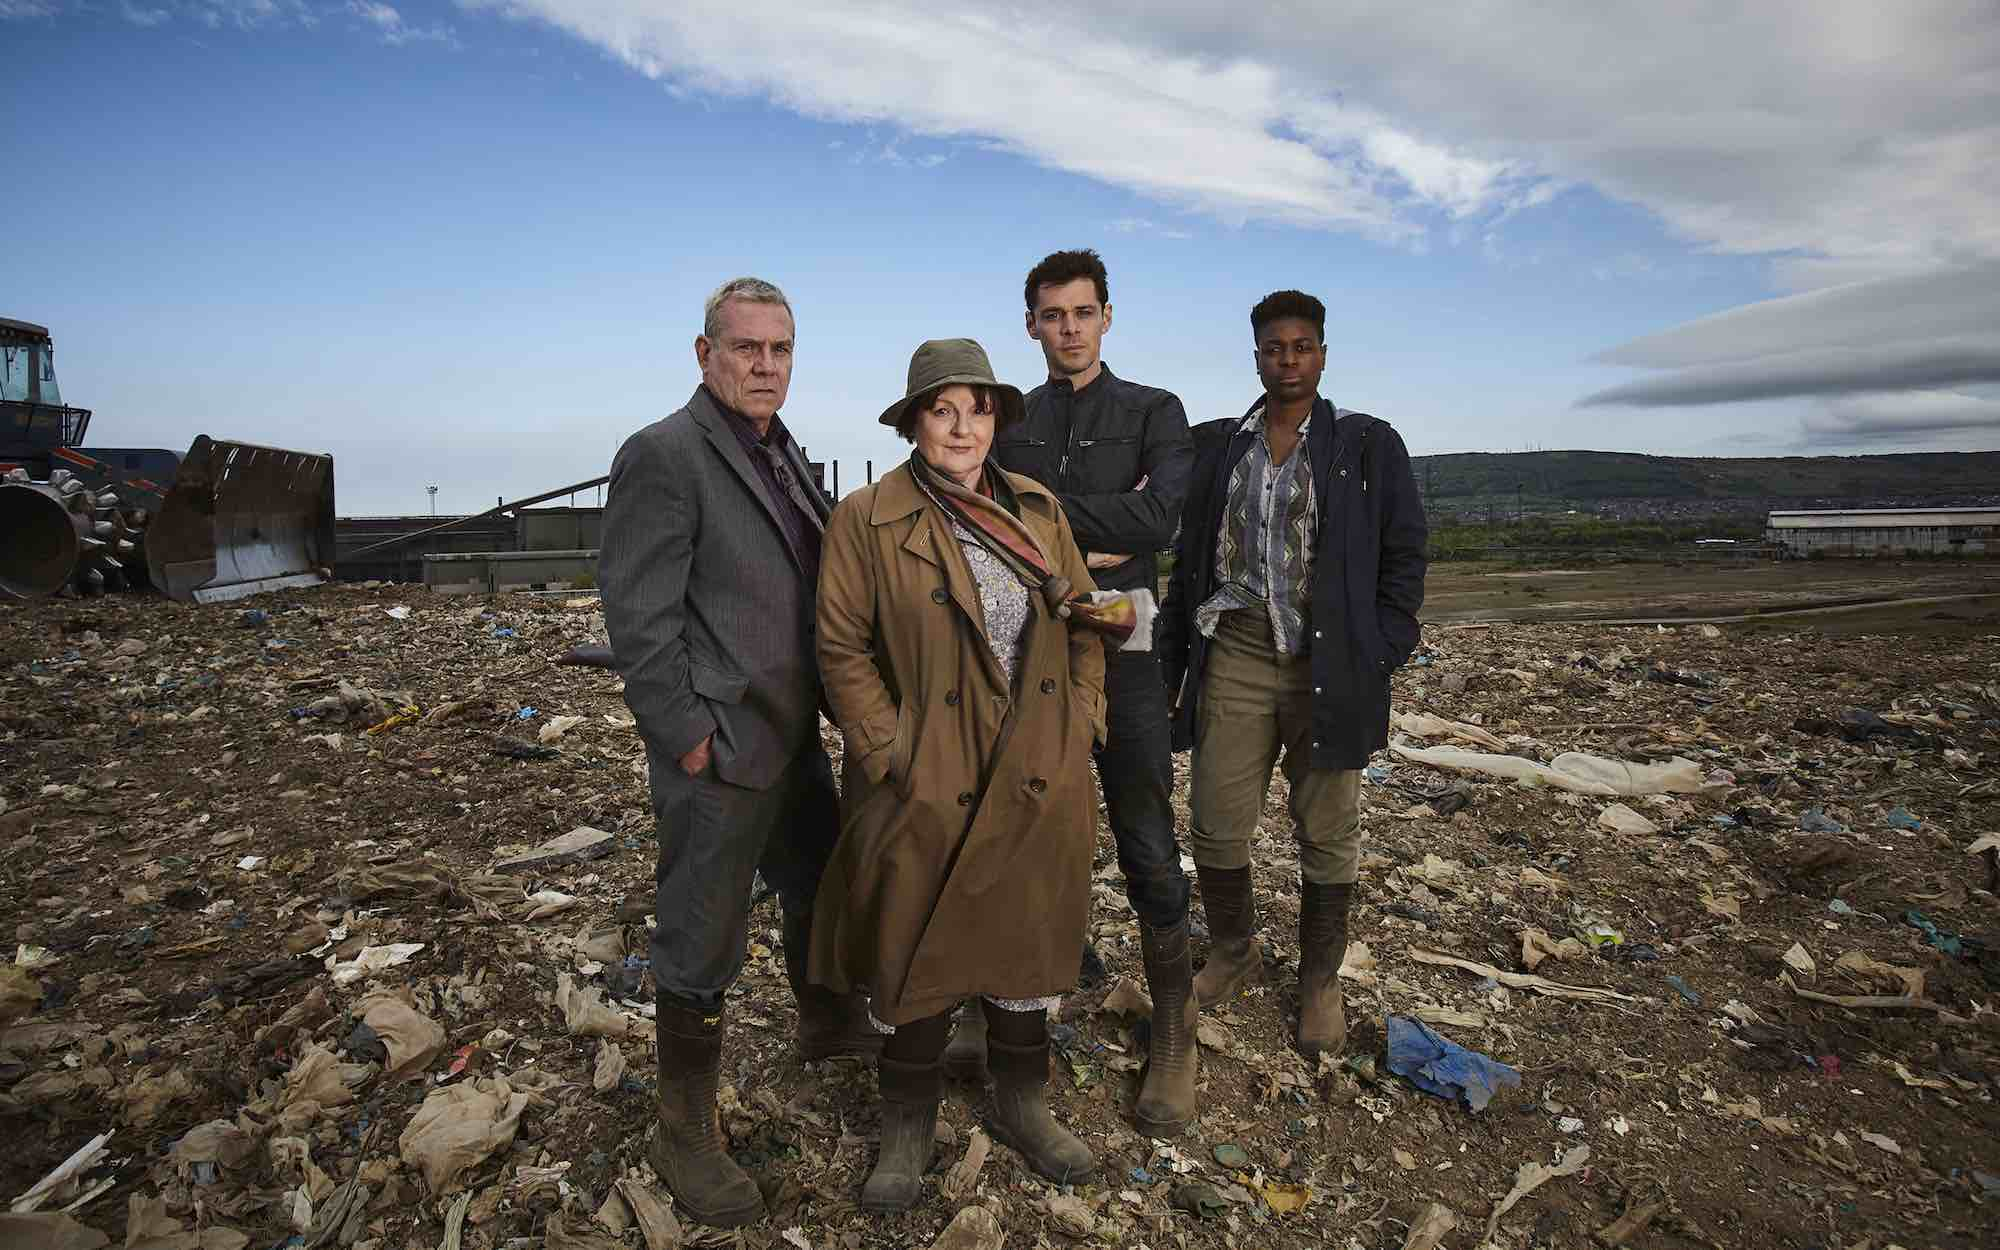 Brenda Blethyn is now filming four new episodes of ITV crime